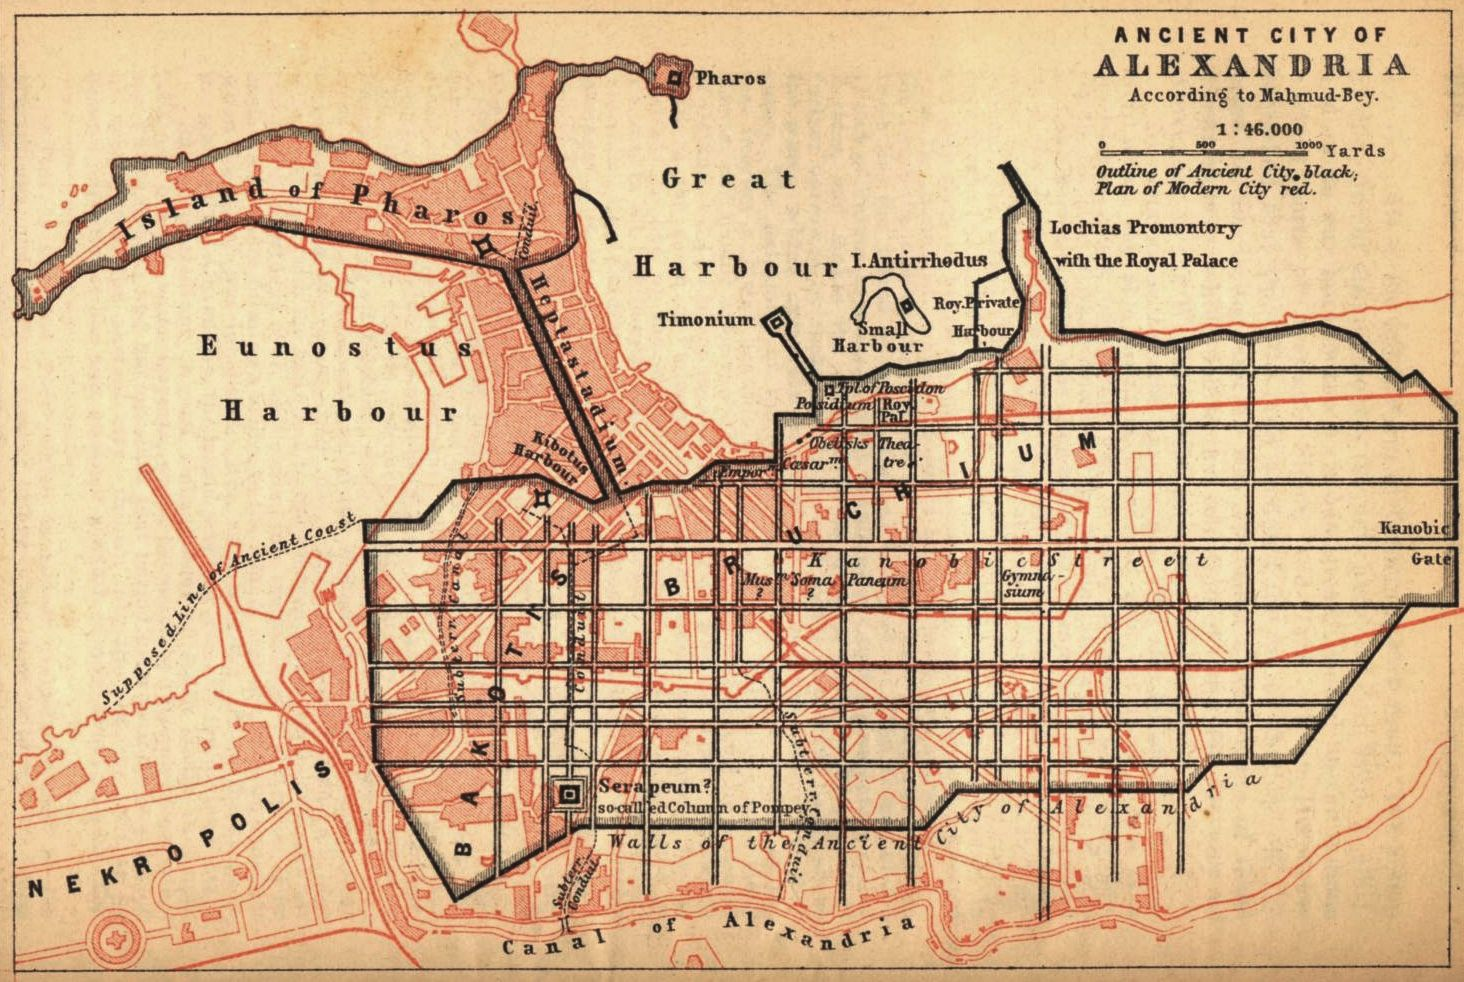 Map of Ancient Alexandria over the a map of the current city How do